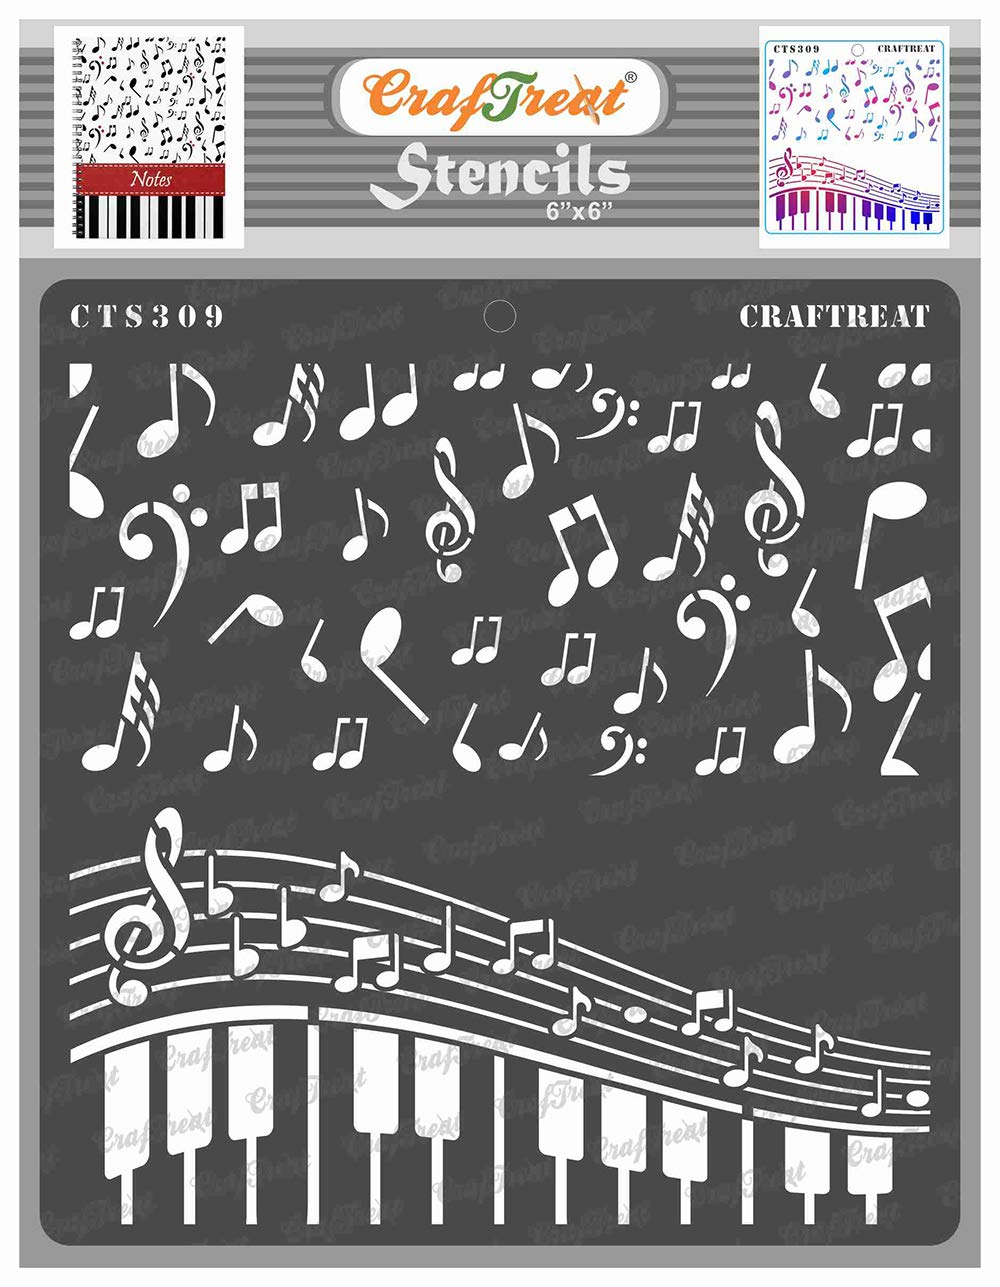 CrafTreat Music Stencils for Painting on Wood, Canvas, Paper, Fabric, Floor, Wall and Tile - Musical Stencil - 6x6 Inches - Reusable DIY Art and Craft Stencils - Music Stencil Templates Music